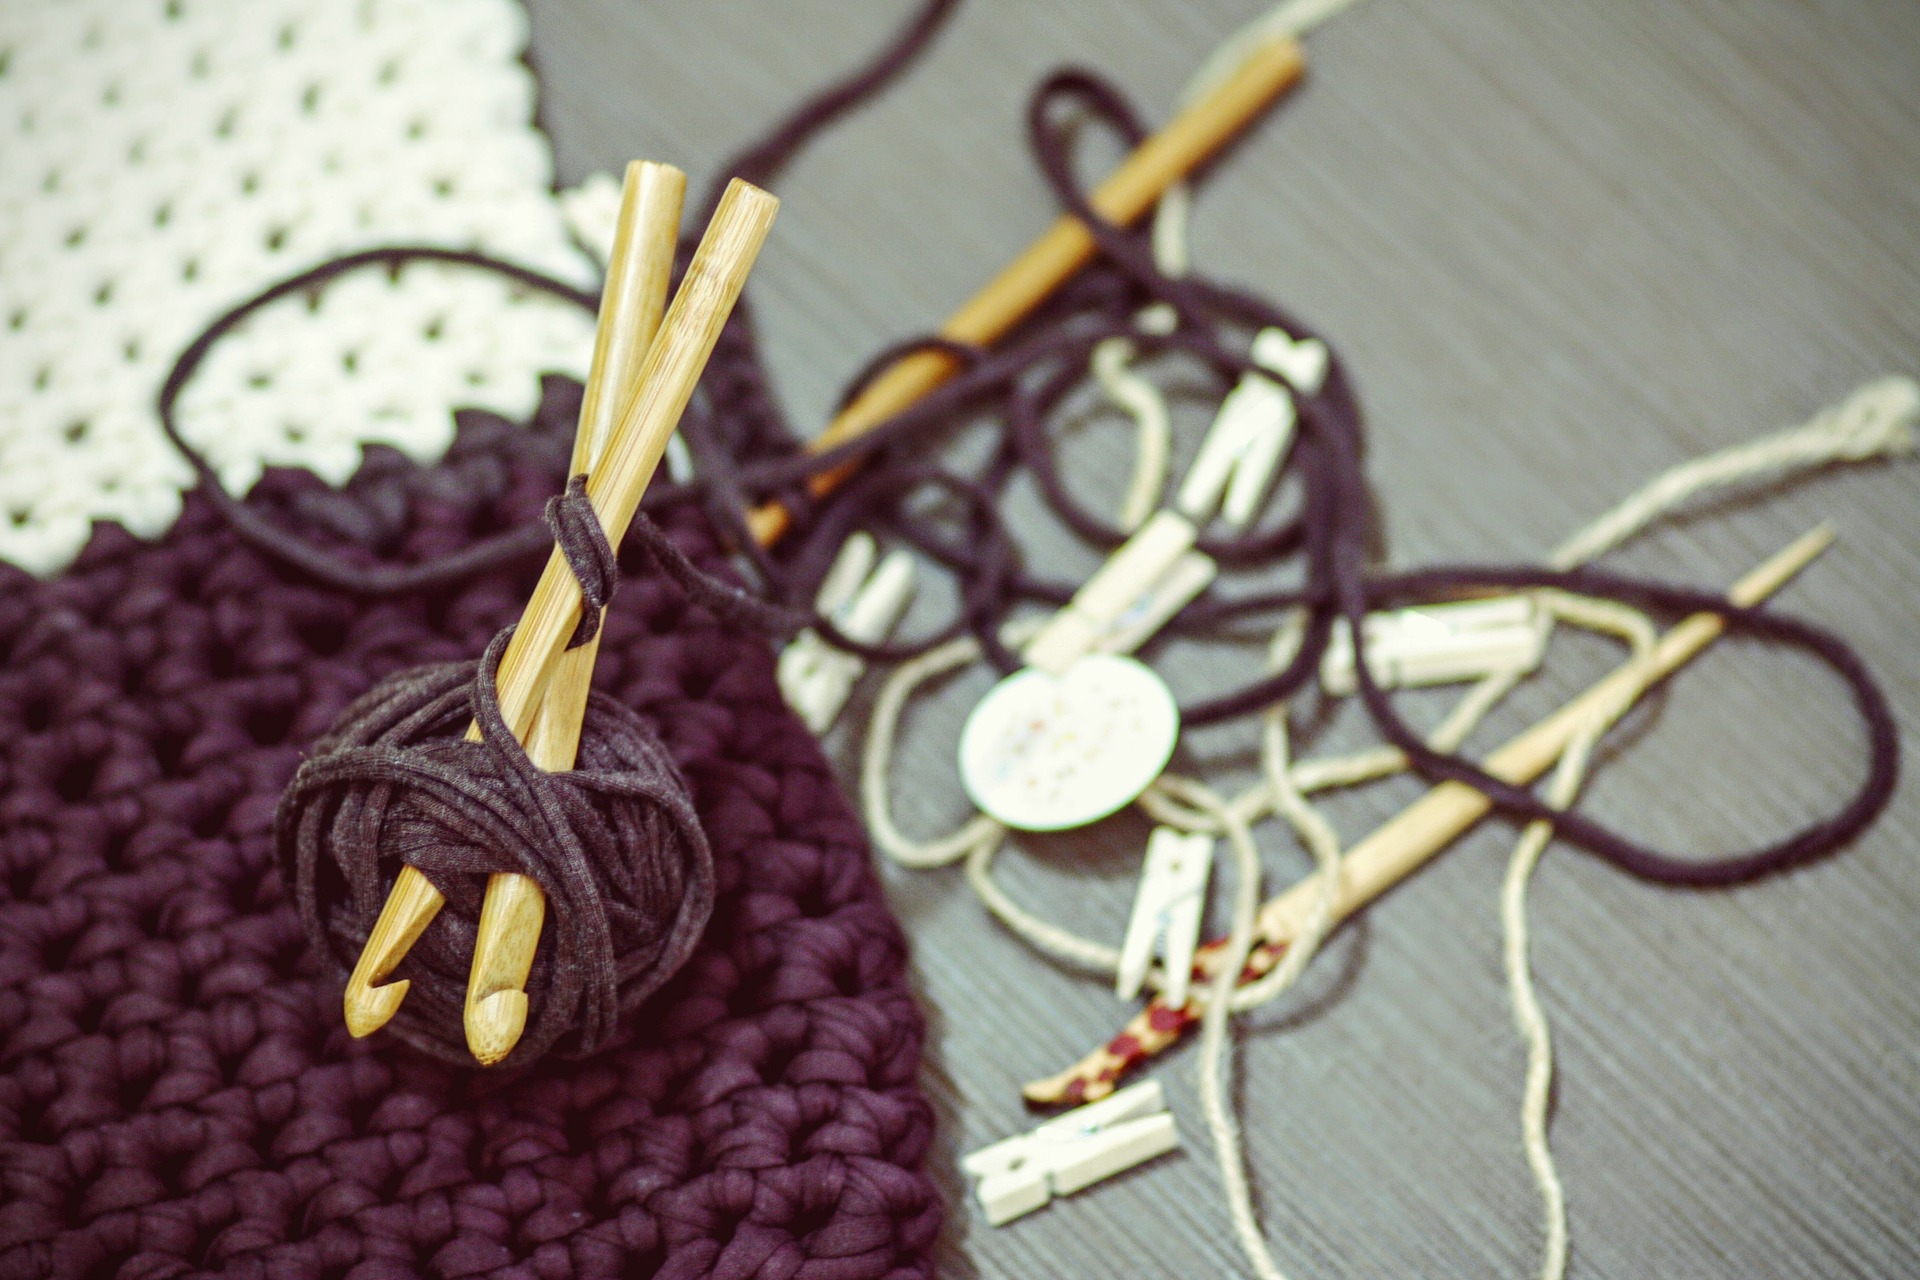 crocheting-1479213_1920.jpg